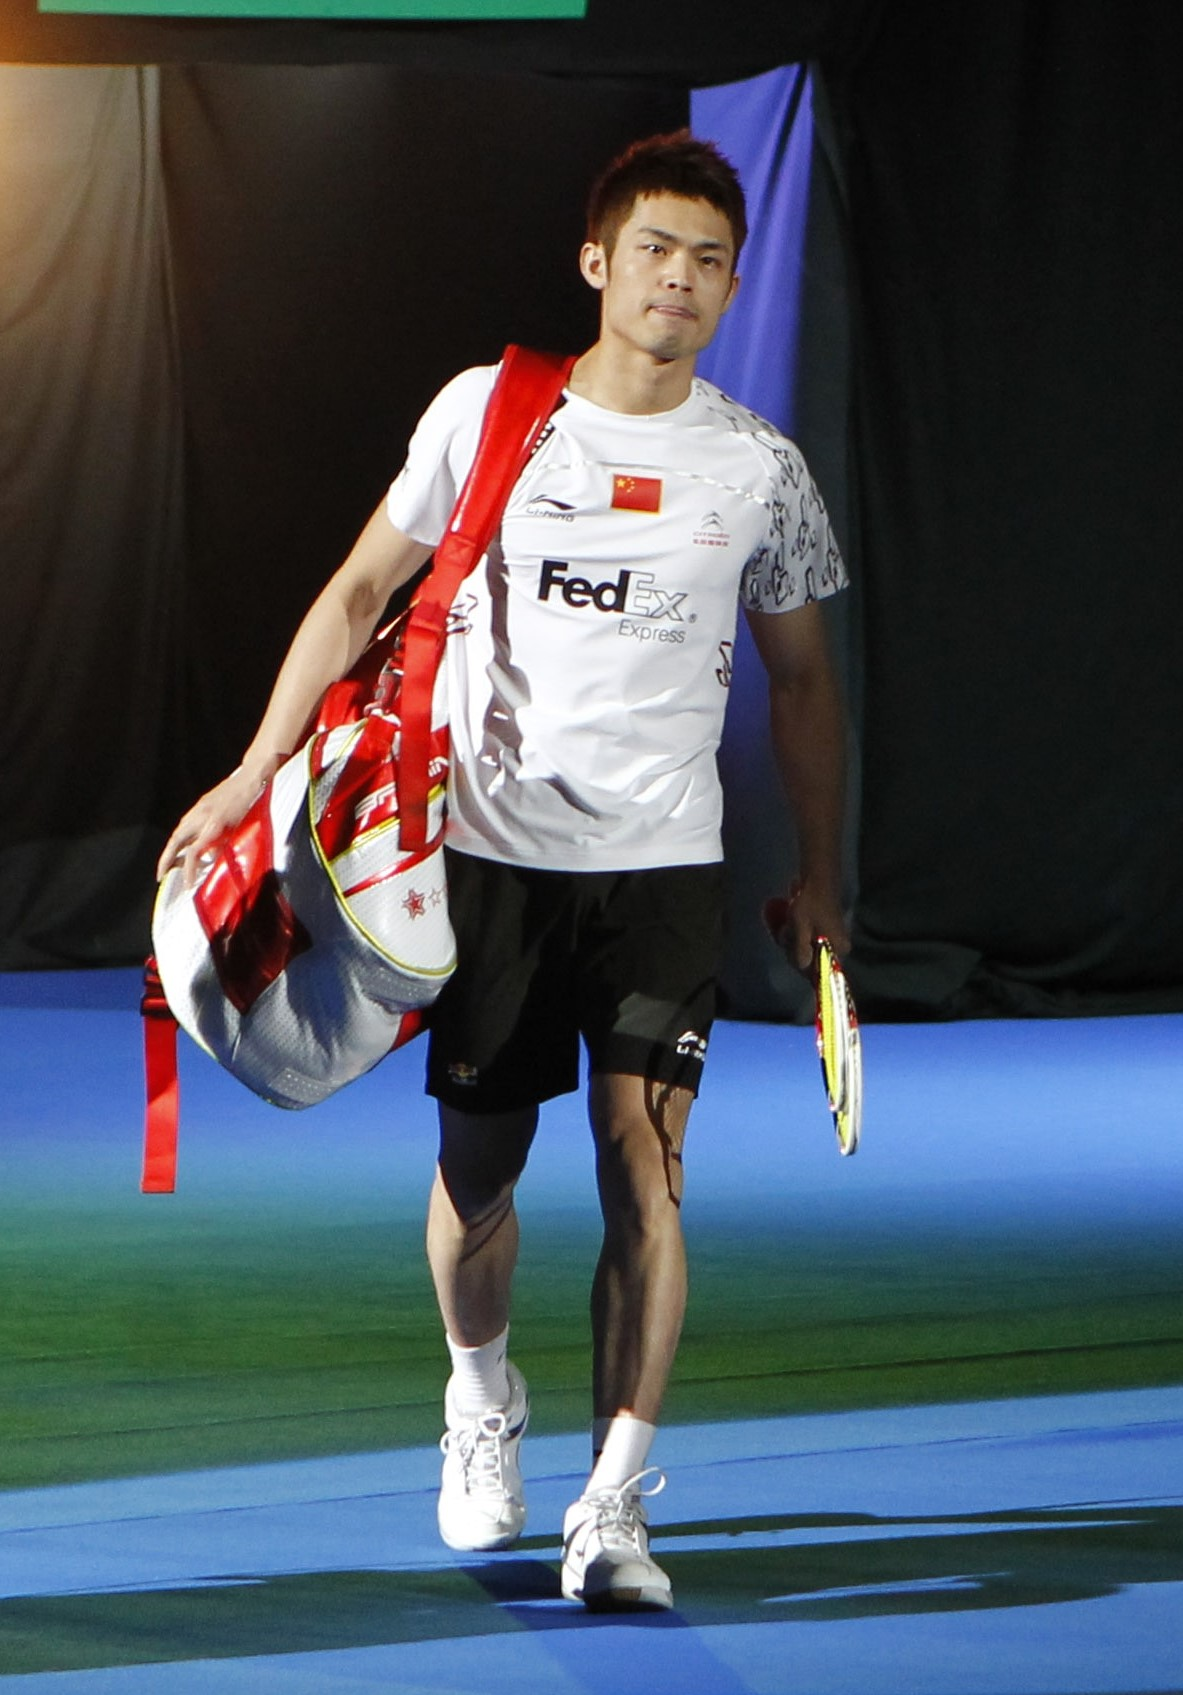 7 Essential Items You Should Have In Your Badminton Kit/Gear Bag